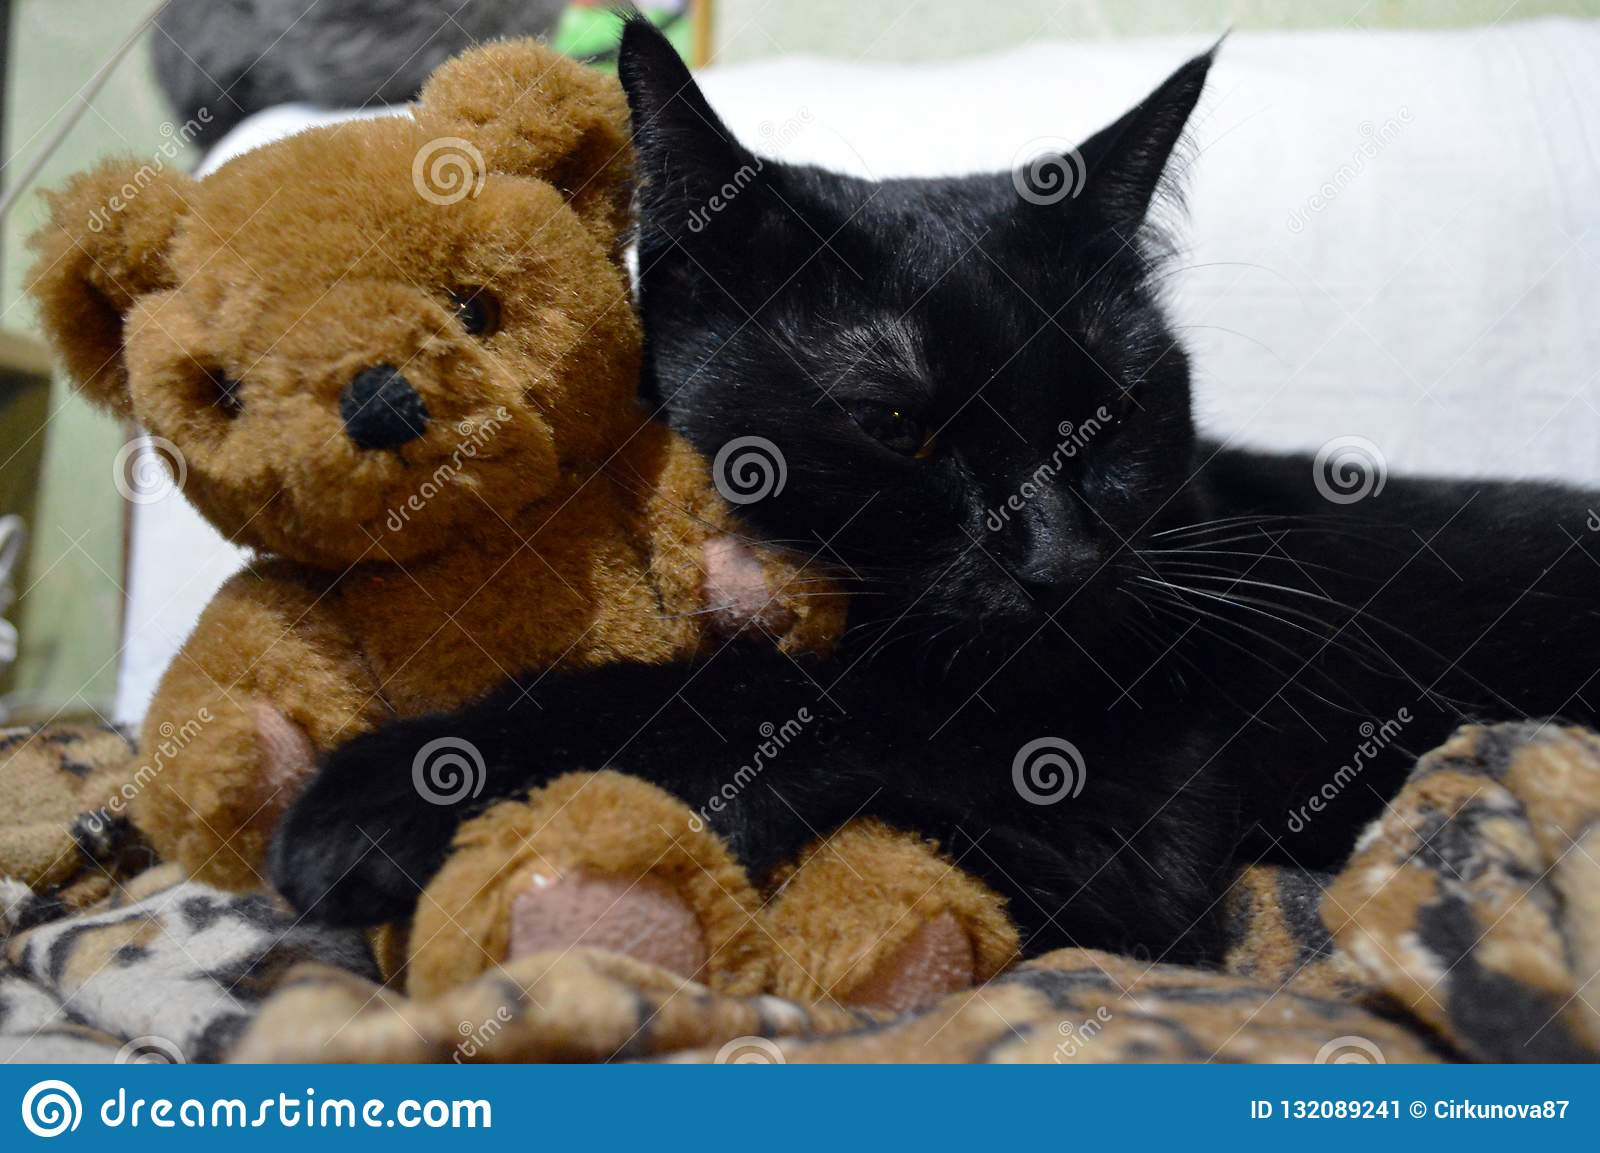 Lovely Black Cat With A Teddy Bear Stock Image Image Of Charming